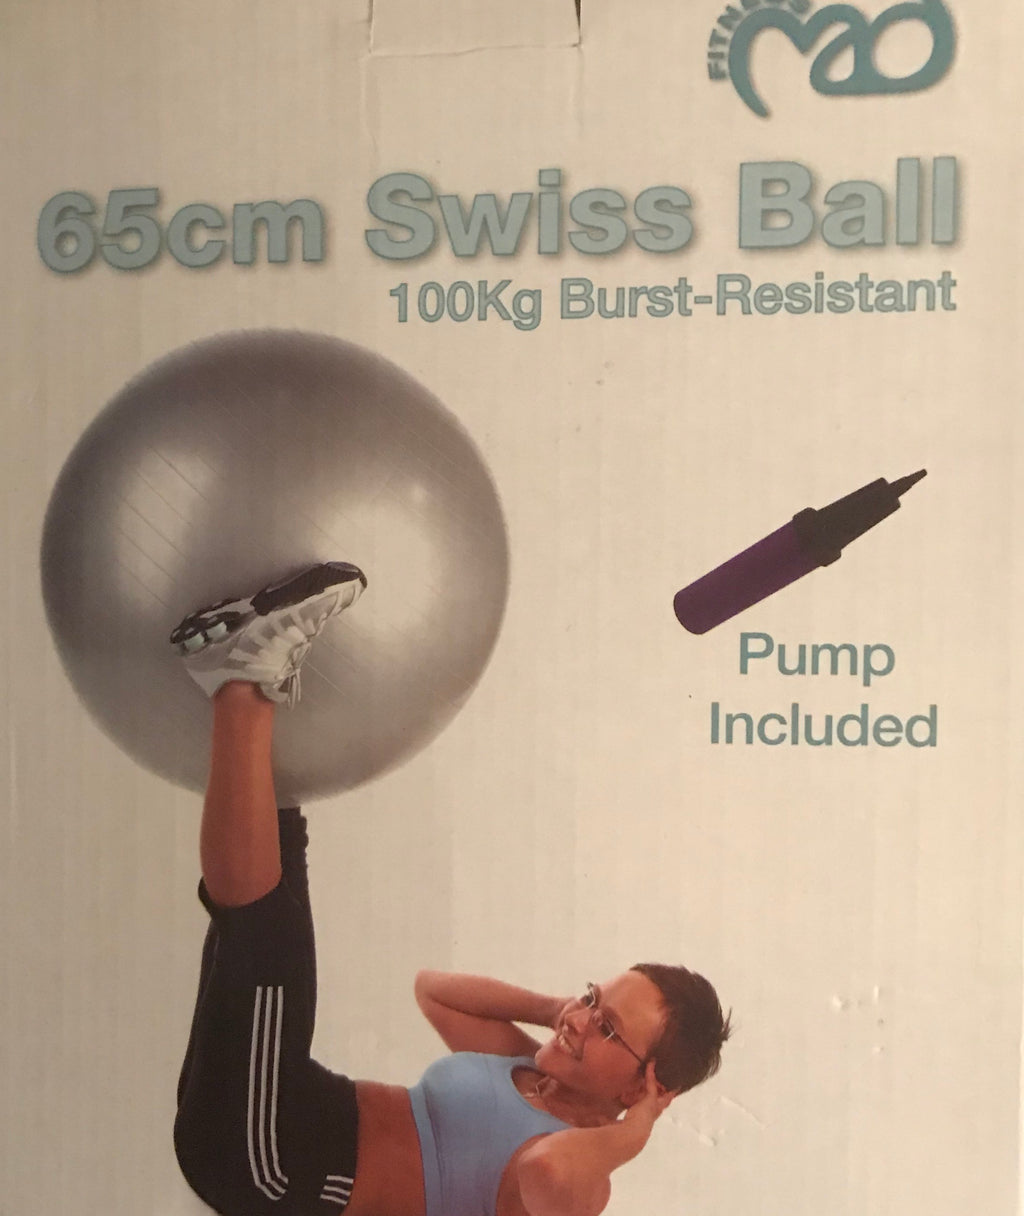 Fitness Mad 65cm Swiss Ball